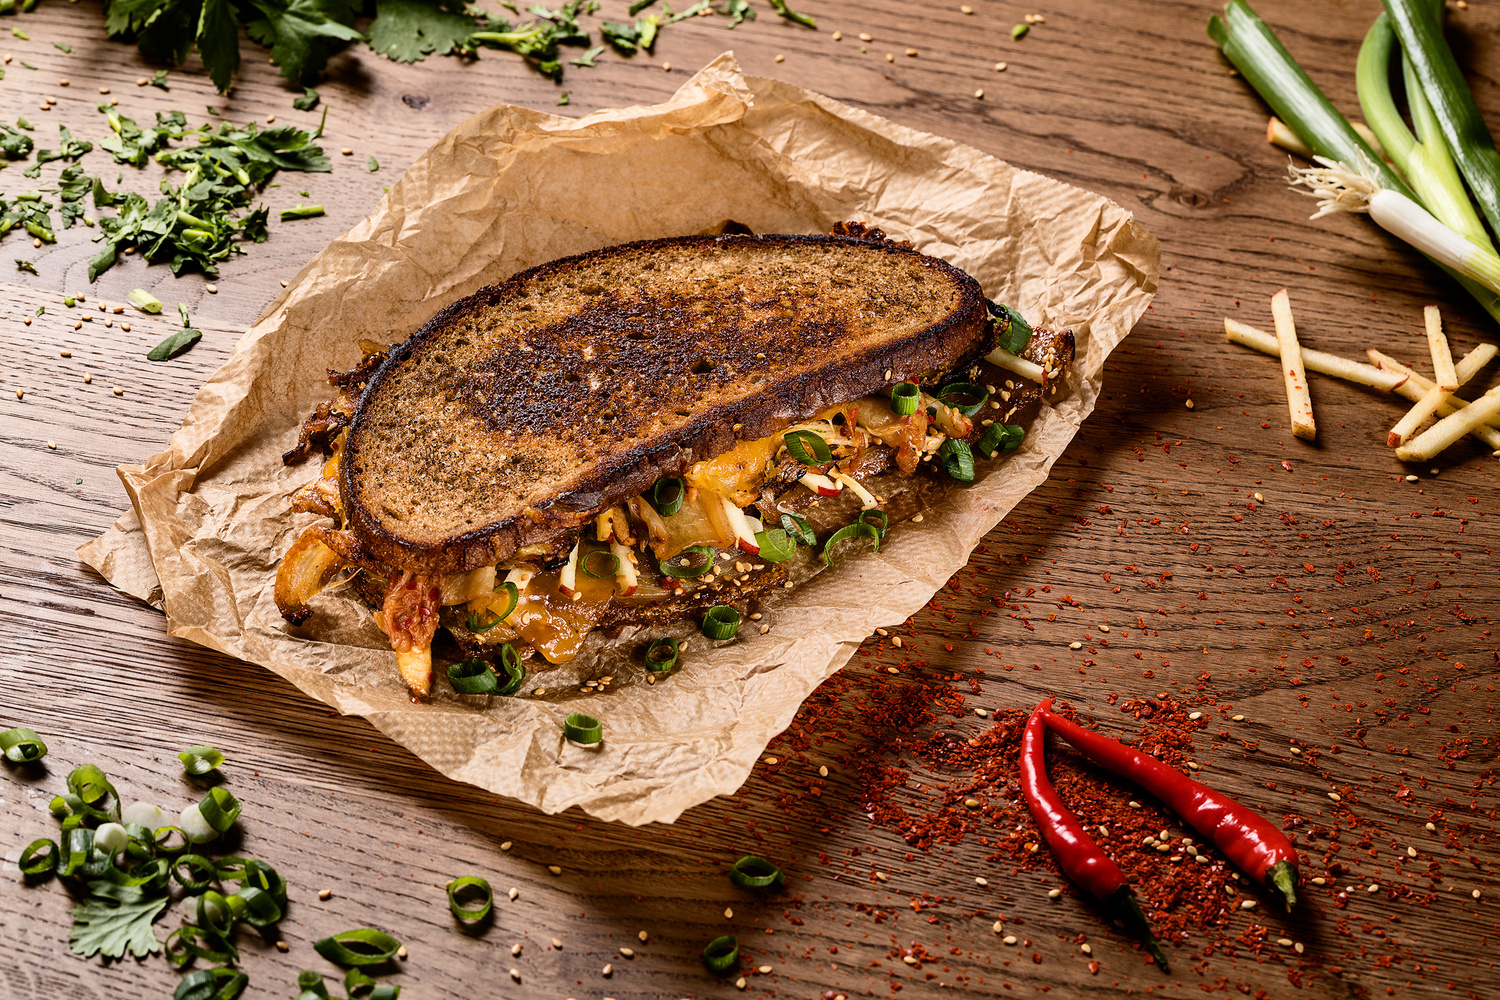 Hot Grilled-Cheese Sandwich by Till Luz